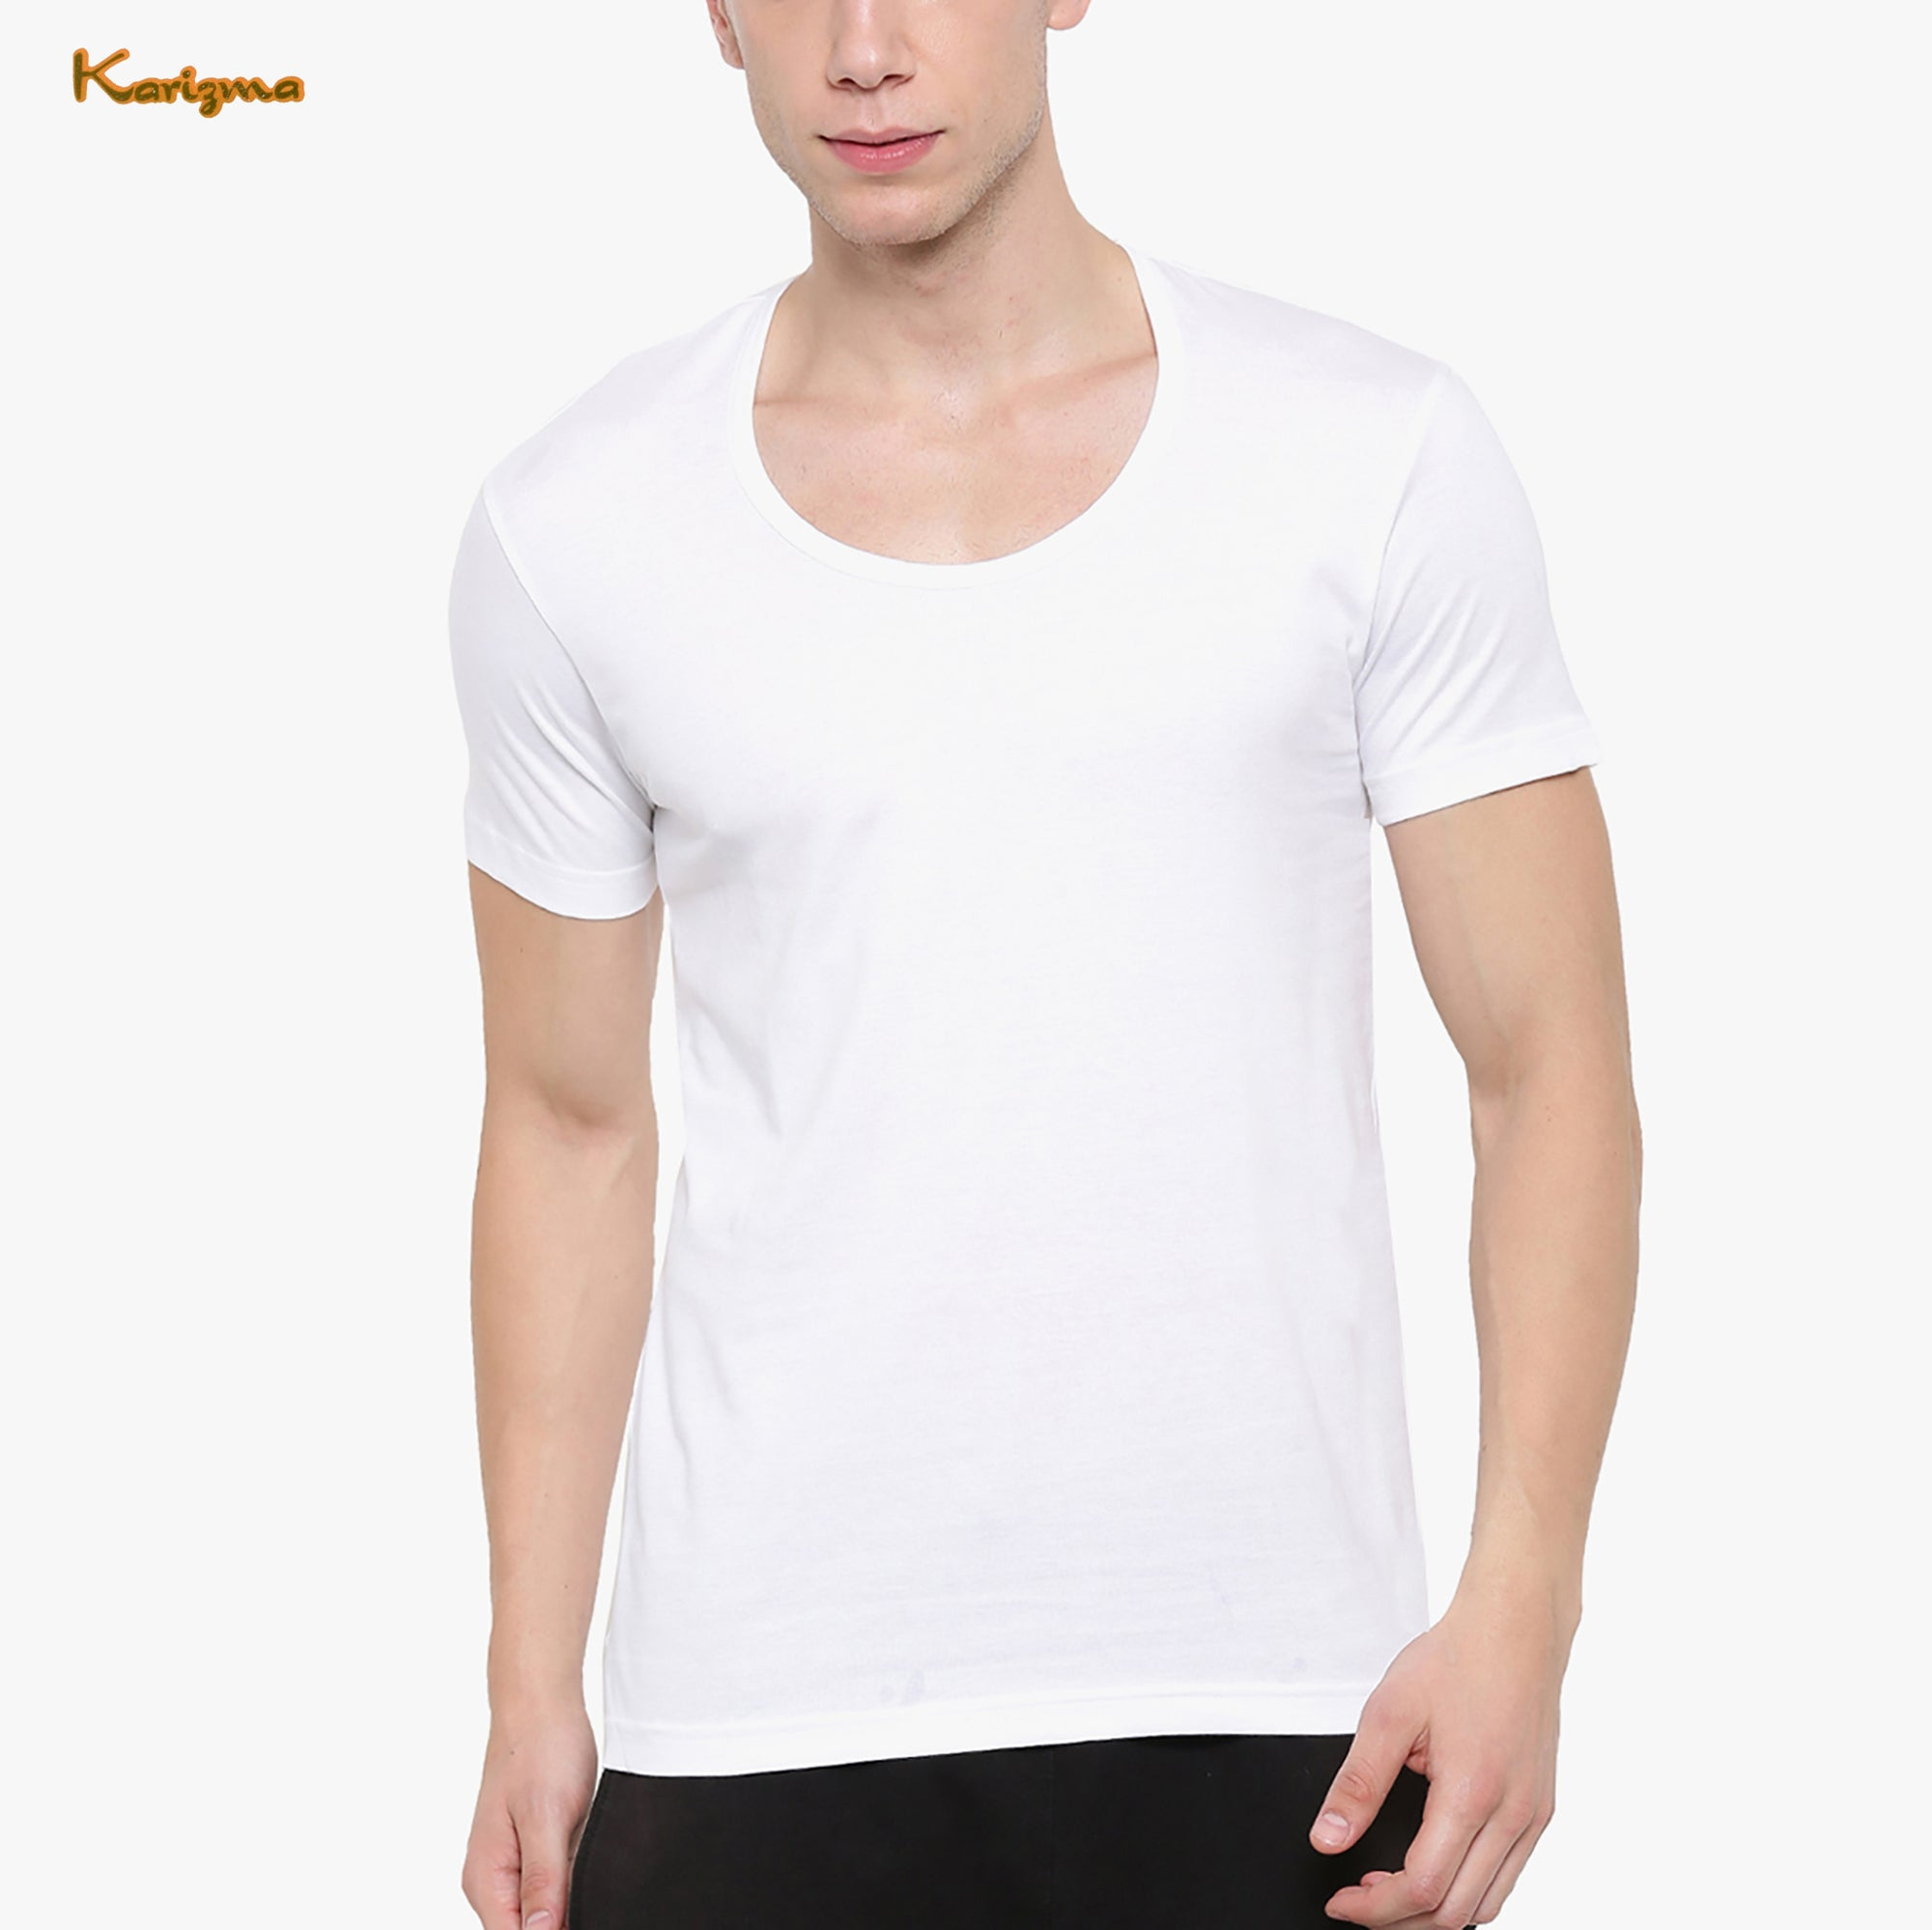 brandsego - Karizma Inner-Wear Short Sleeve Vest For Men-BE4331